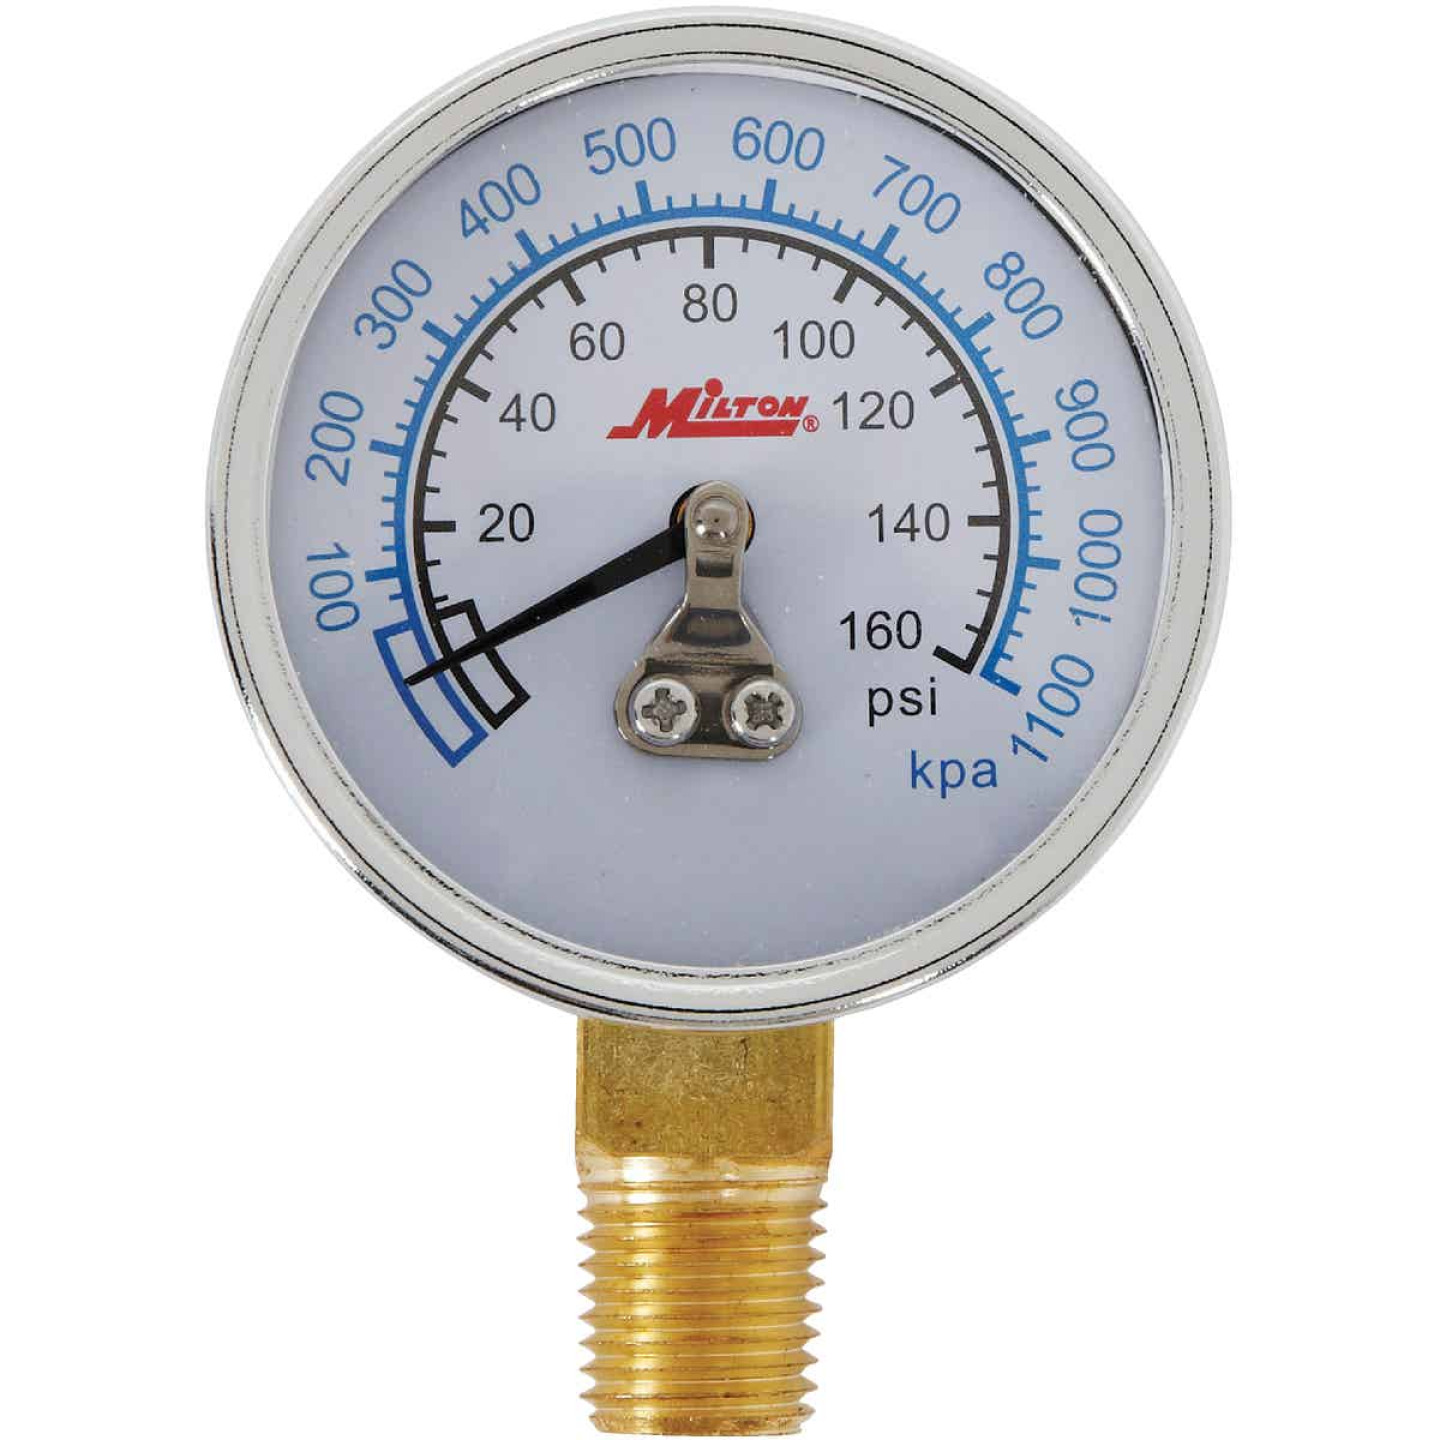 Milton 1/4 In. NPT Bottom Mount Pressure Gauge Image 1